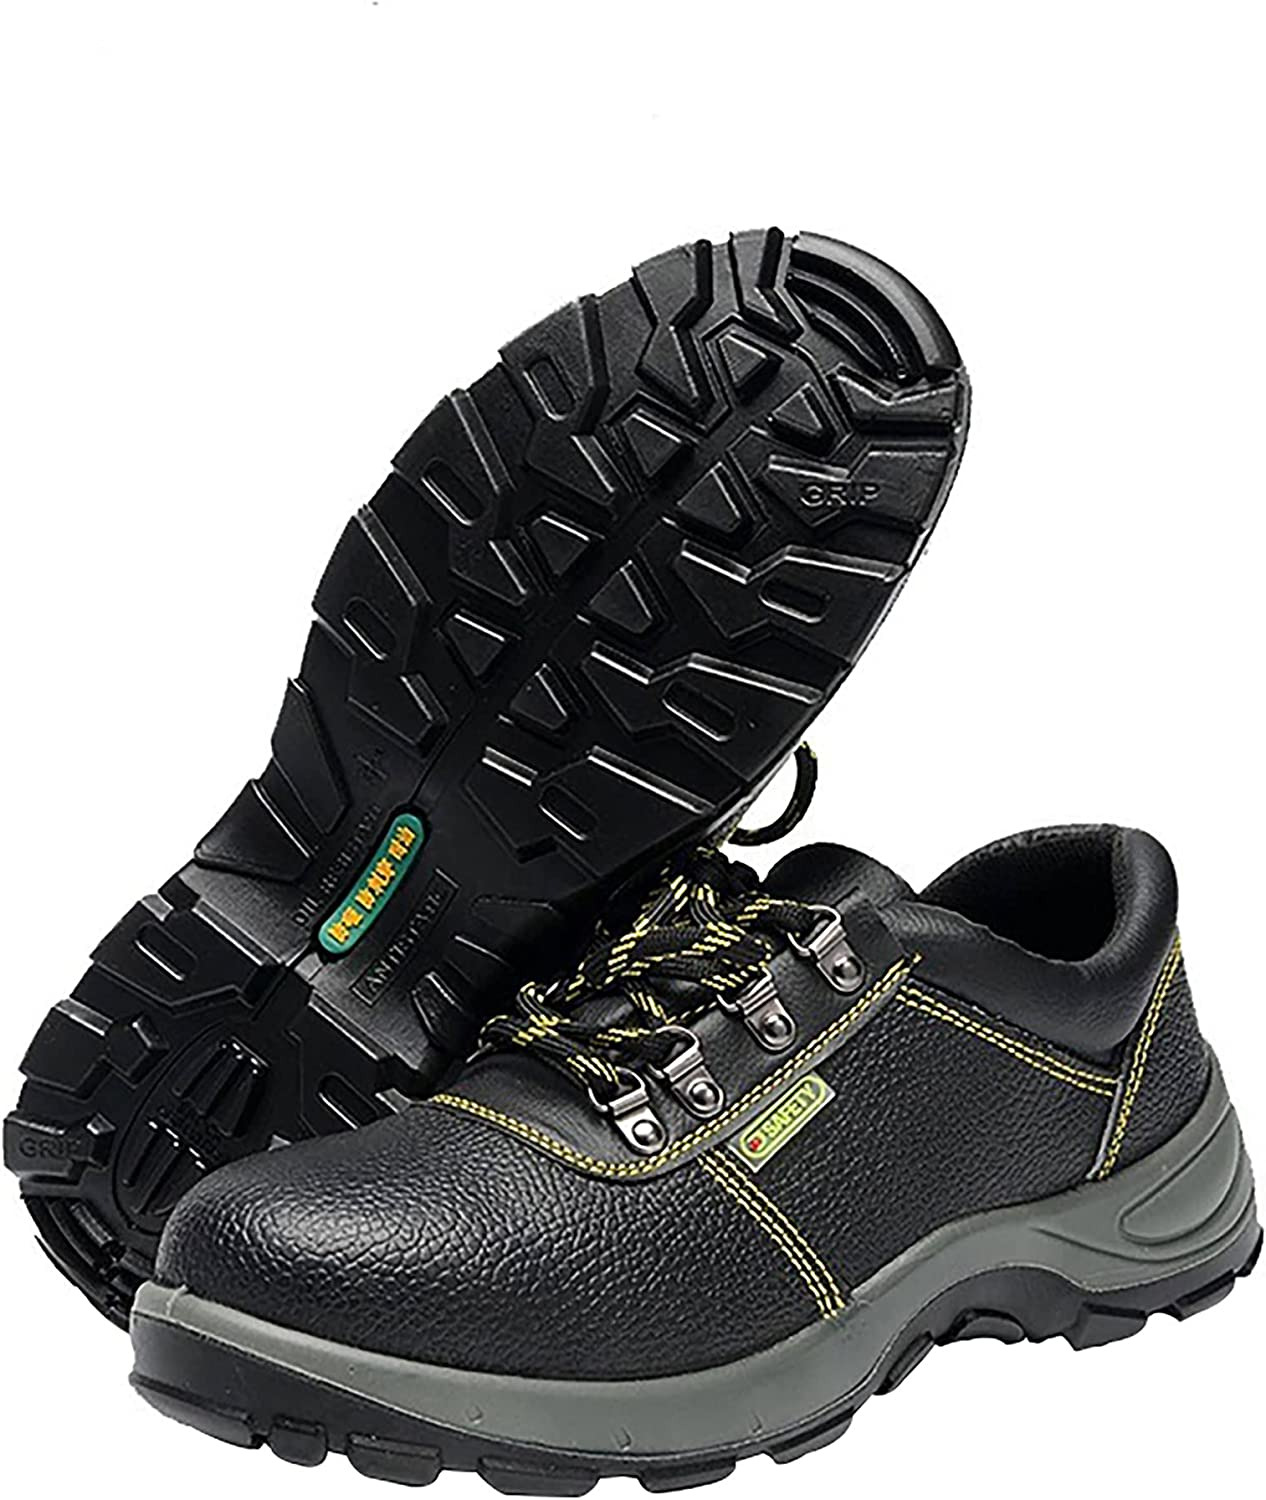 NC Waterproof Steel Toe Shoes for Men Lightweight Safety Sneakers Breathable Work Shoe Puncture Proof Safety Shoes with A Pair of Insoles and Black Shoelaces